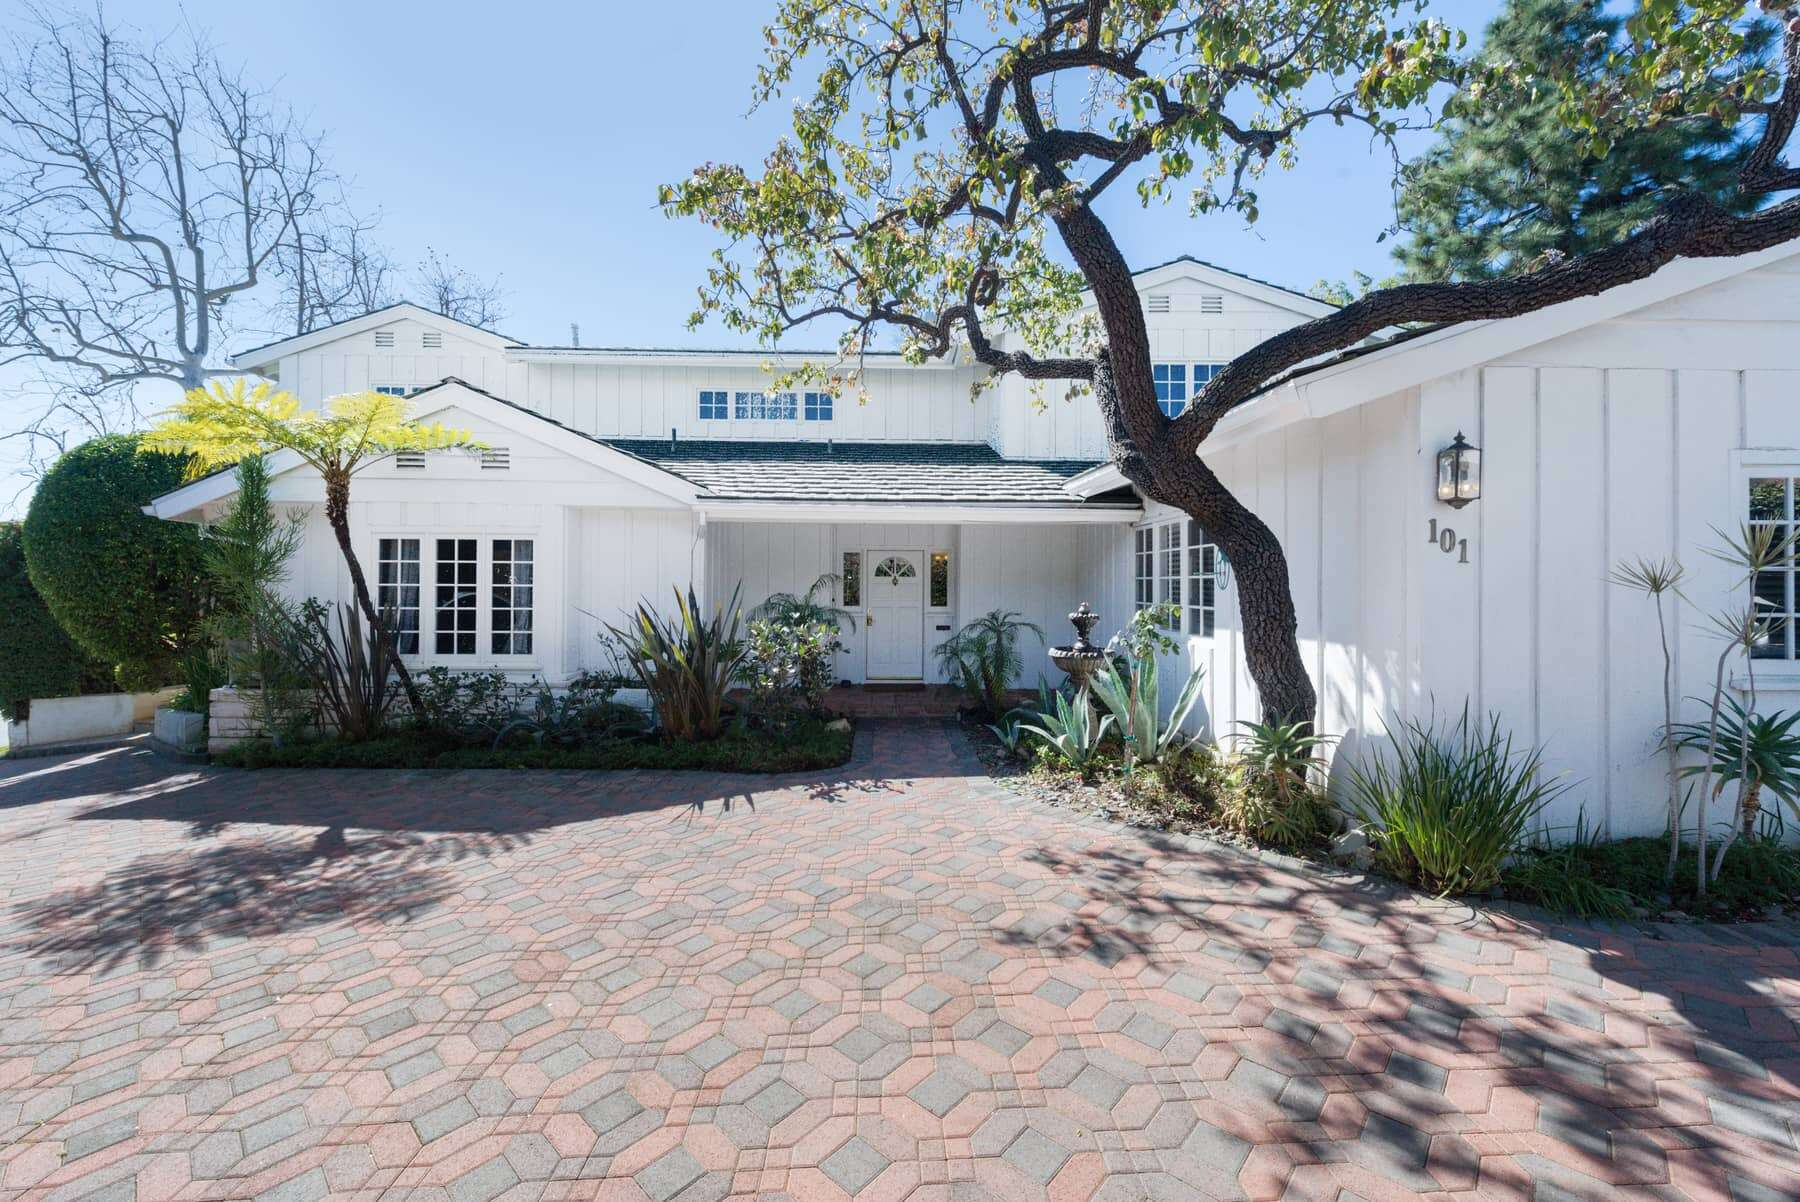 Single Family for Sale at 101 South Saltair Avenue Los Angeles, California 90049 United States